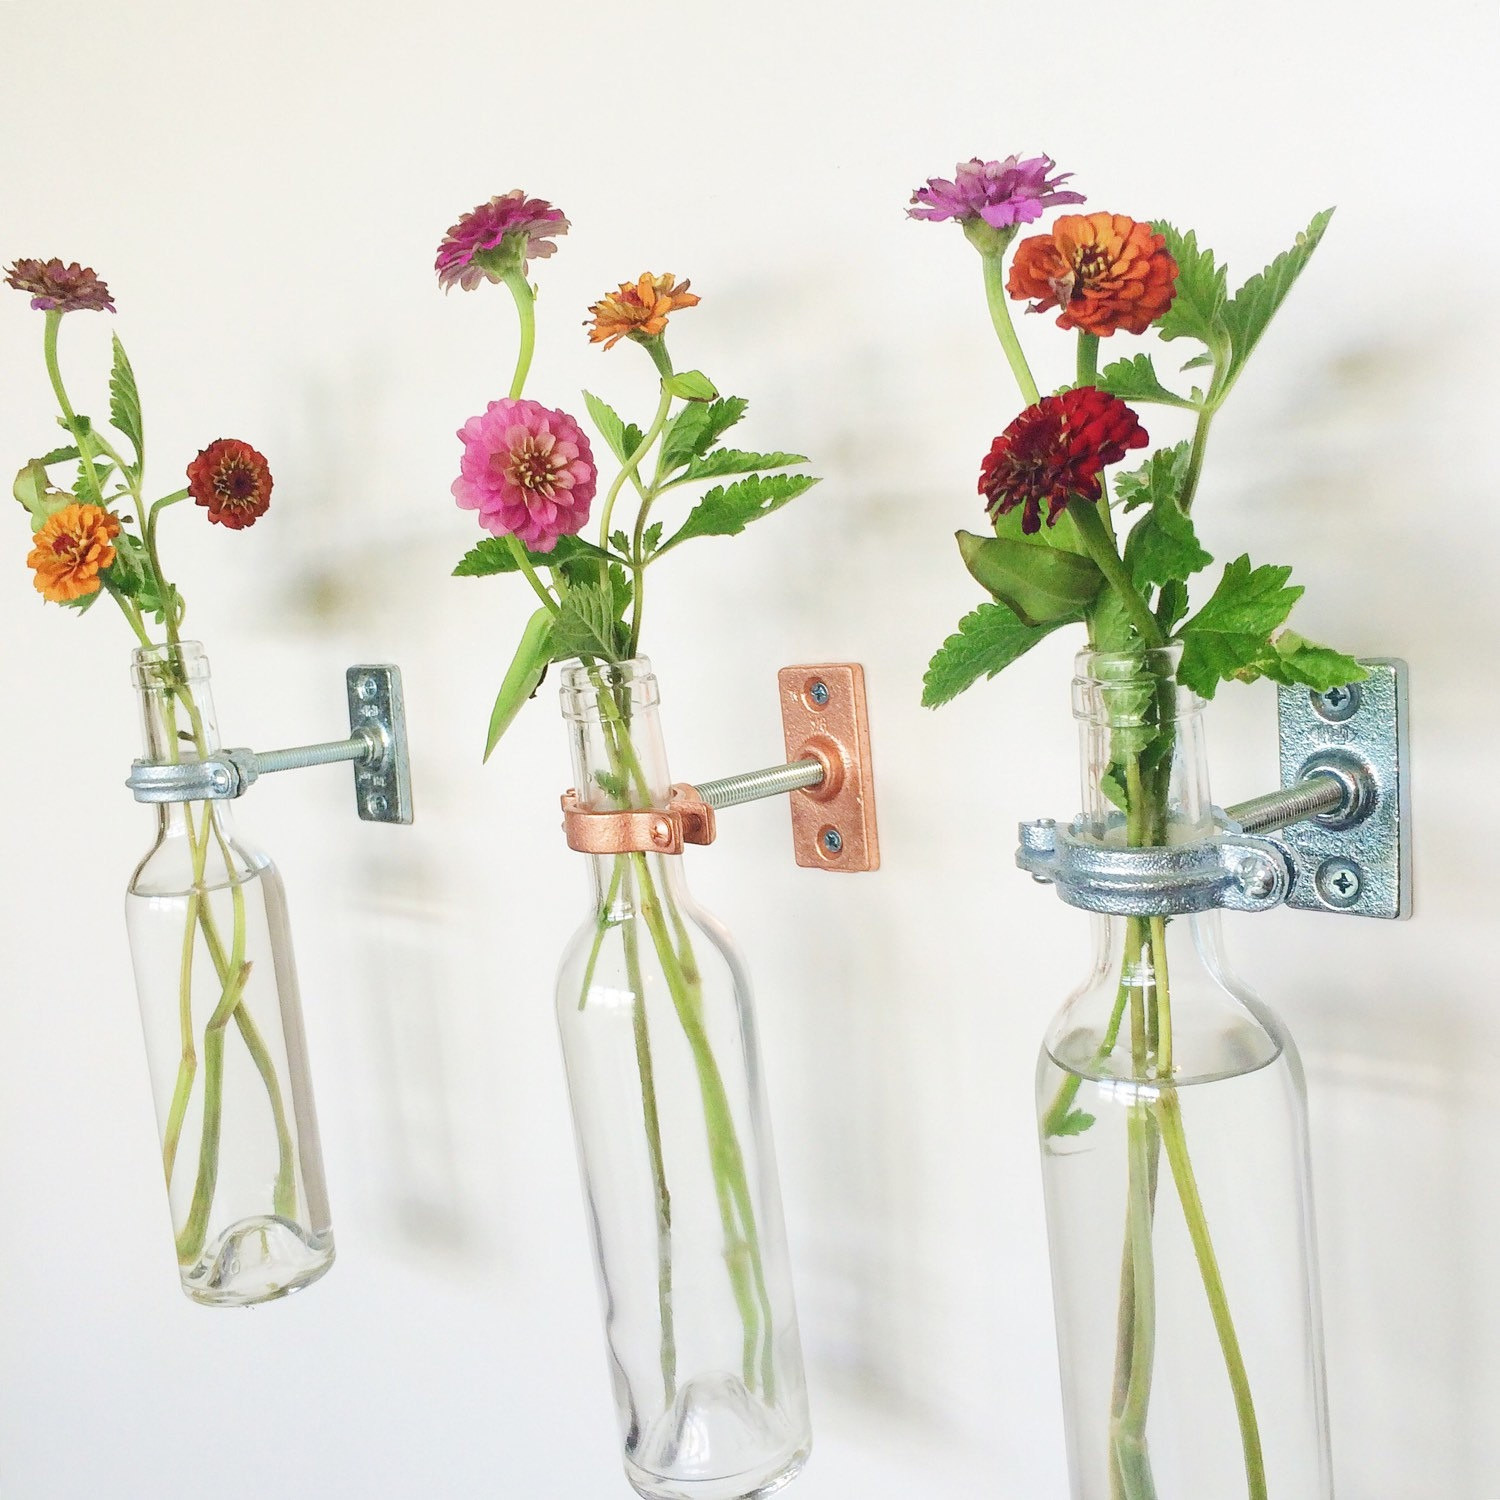 clear plastic bud vase of hanging vases with flowers t in wall flower hanging bud vase beautiful 2 wine bottle wall flower vases mother s day t wall of wall flower hanging bud vase